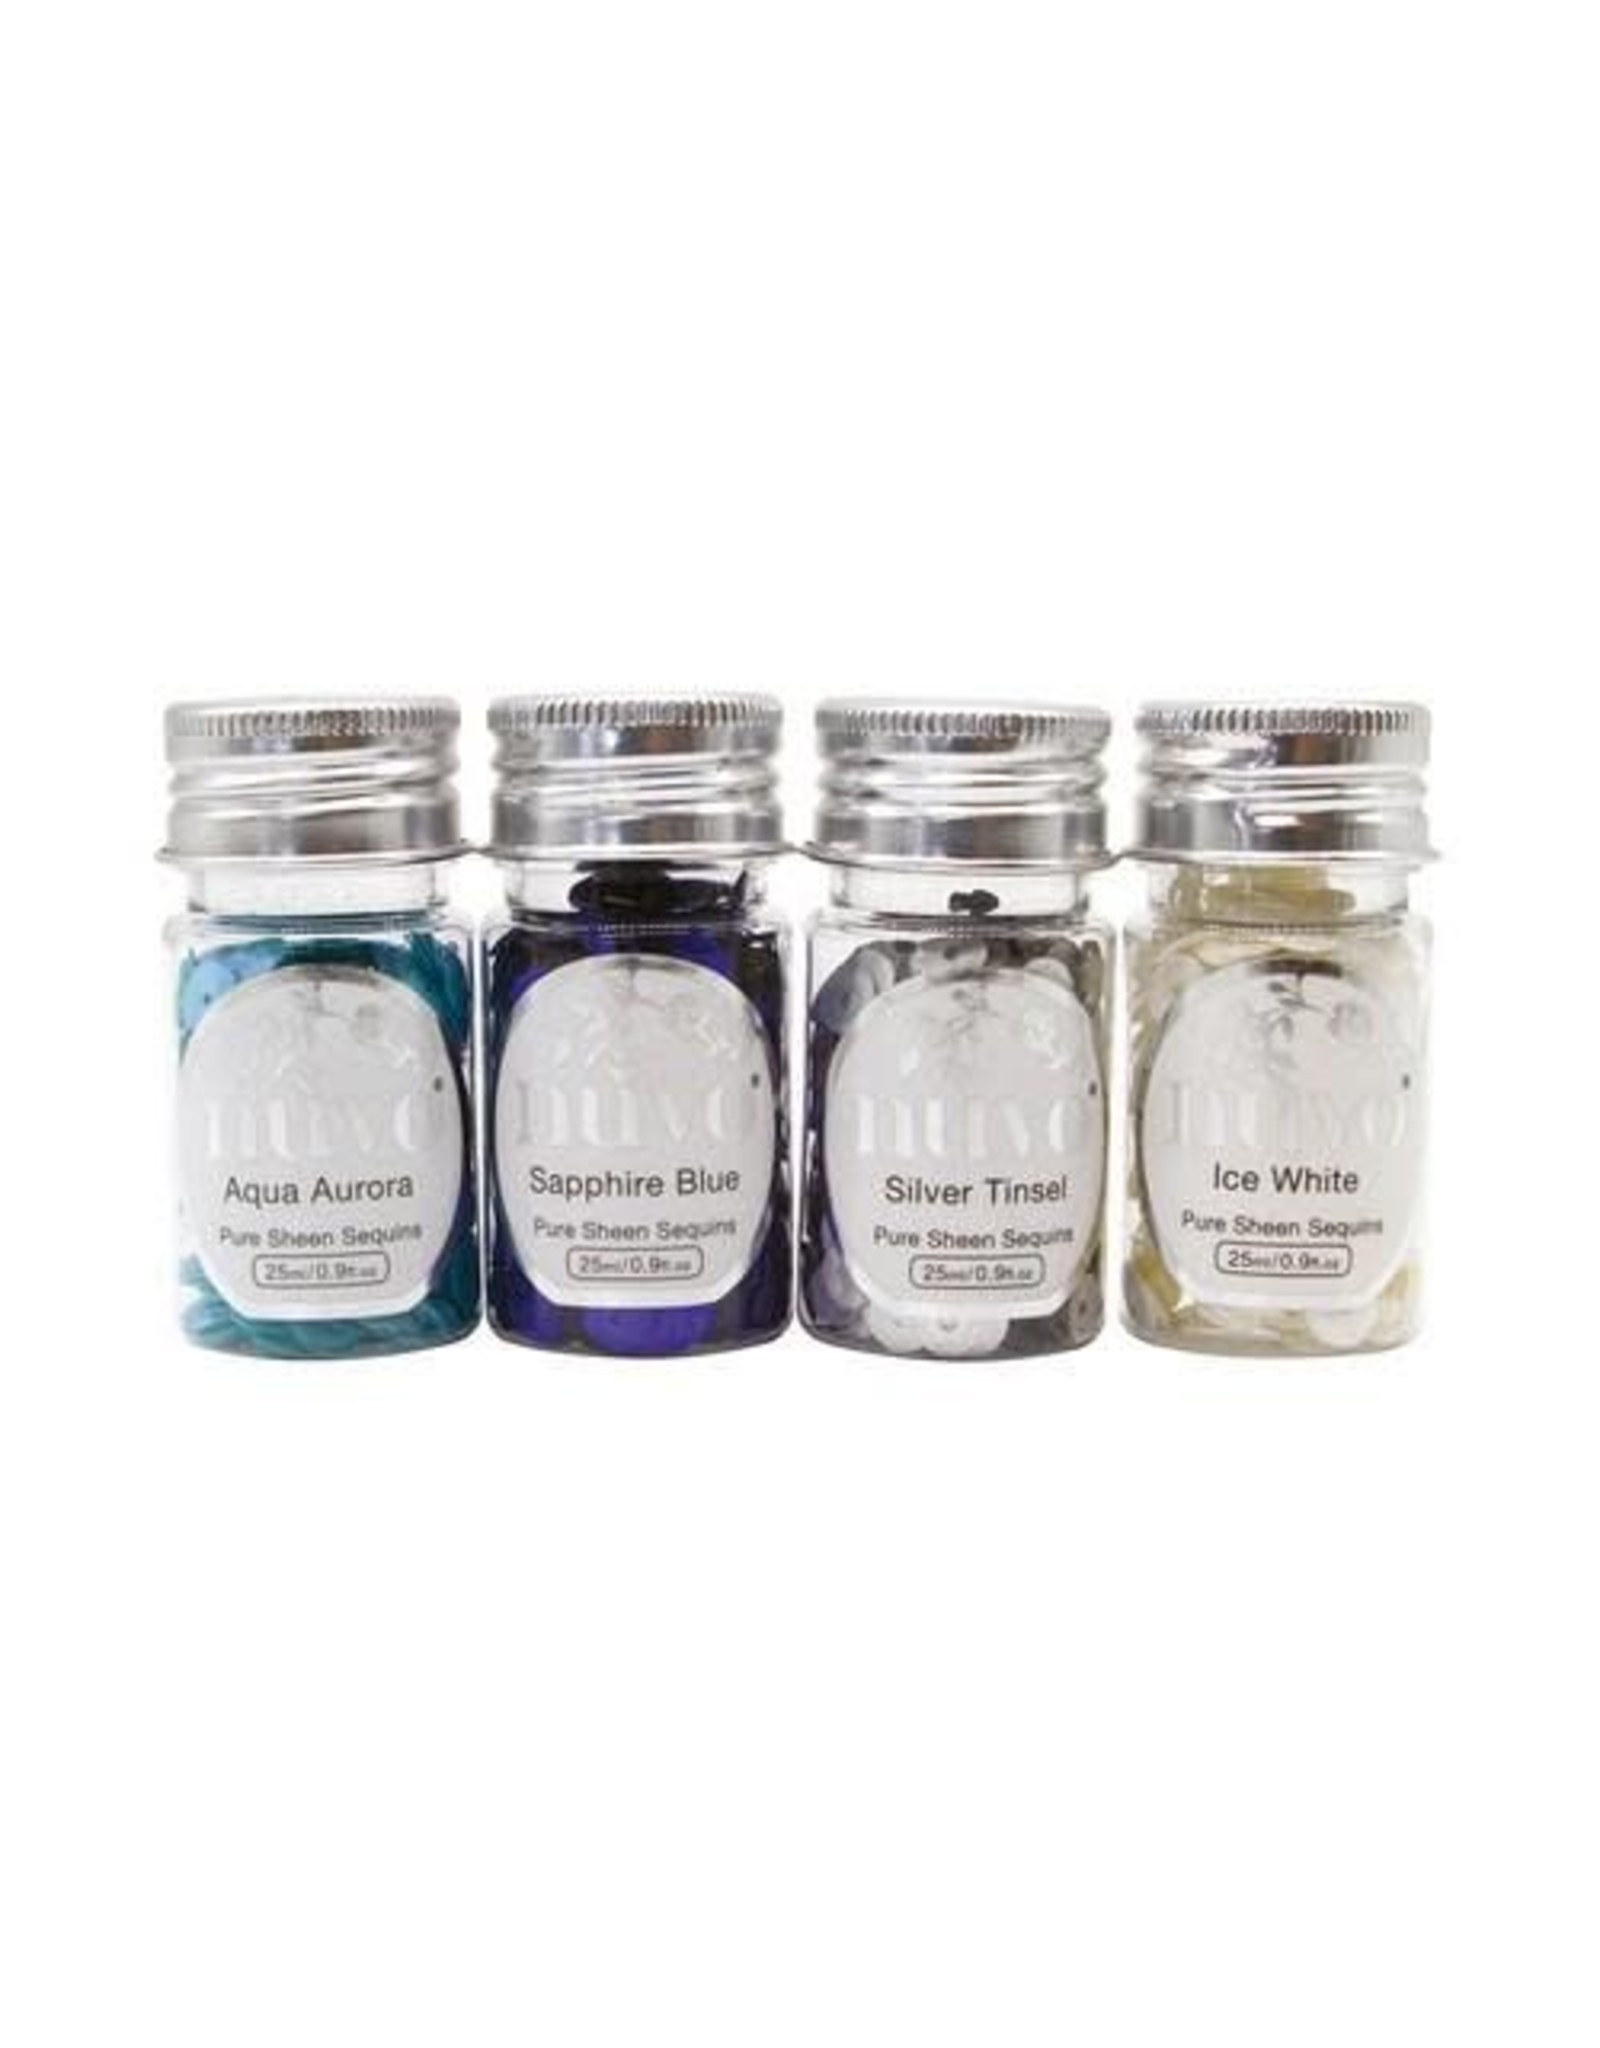 Nuvo pure sheen Nuvo Pure Sheen Sequins - Let it Snow 4 pk 282N